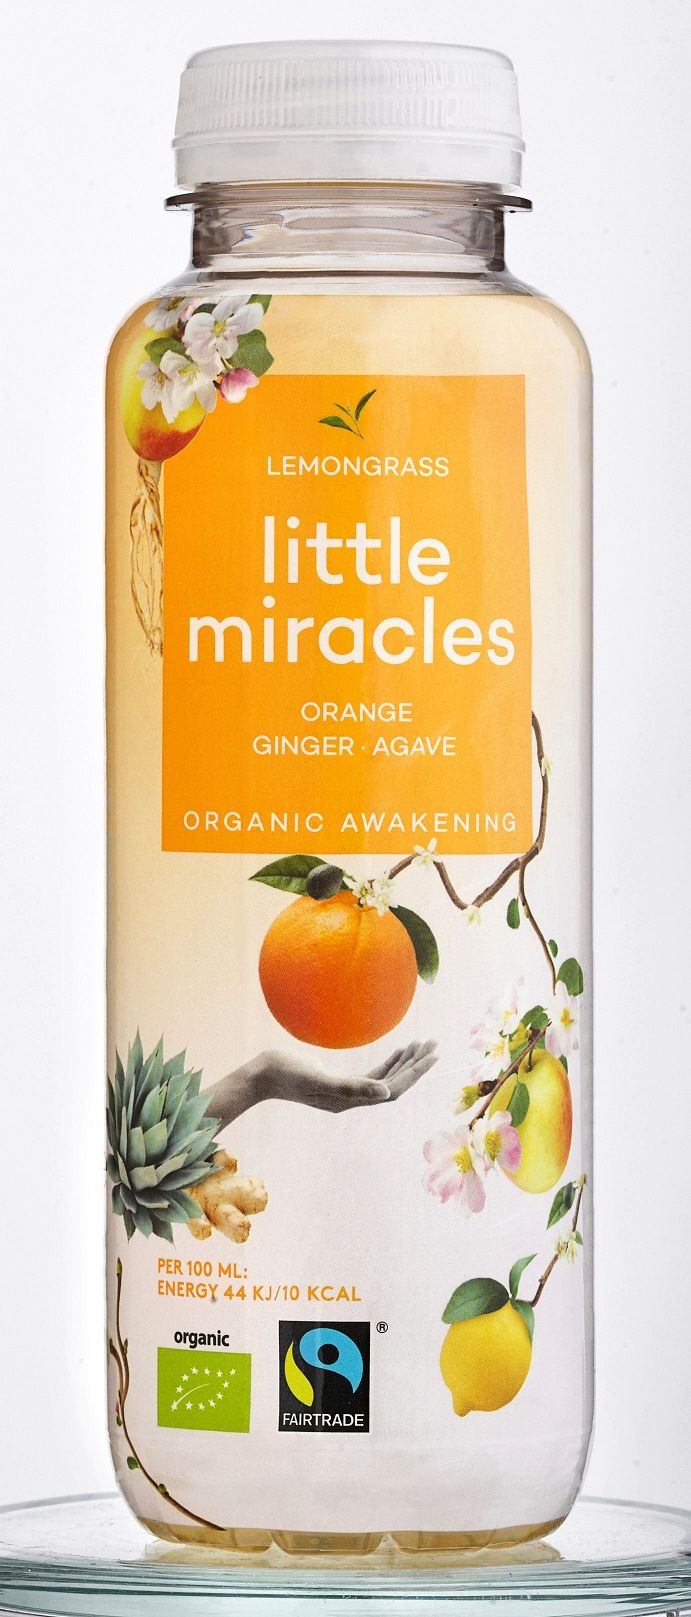 Little Miracles Lemongrass Orange